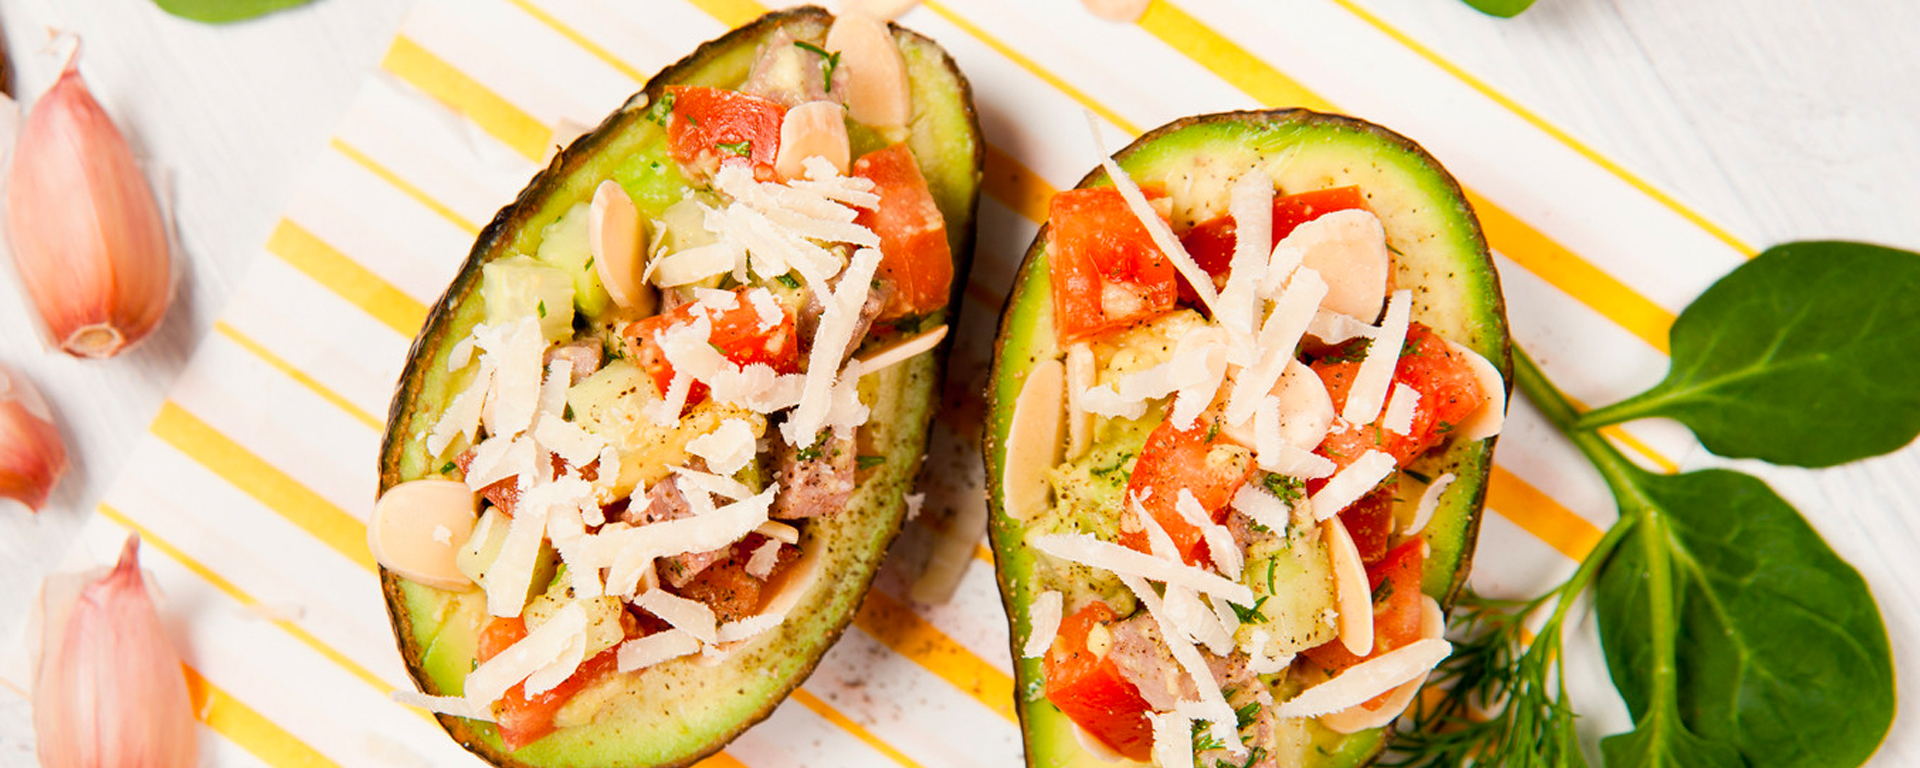 Photo for - Avocado with Tangy Topping